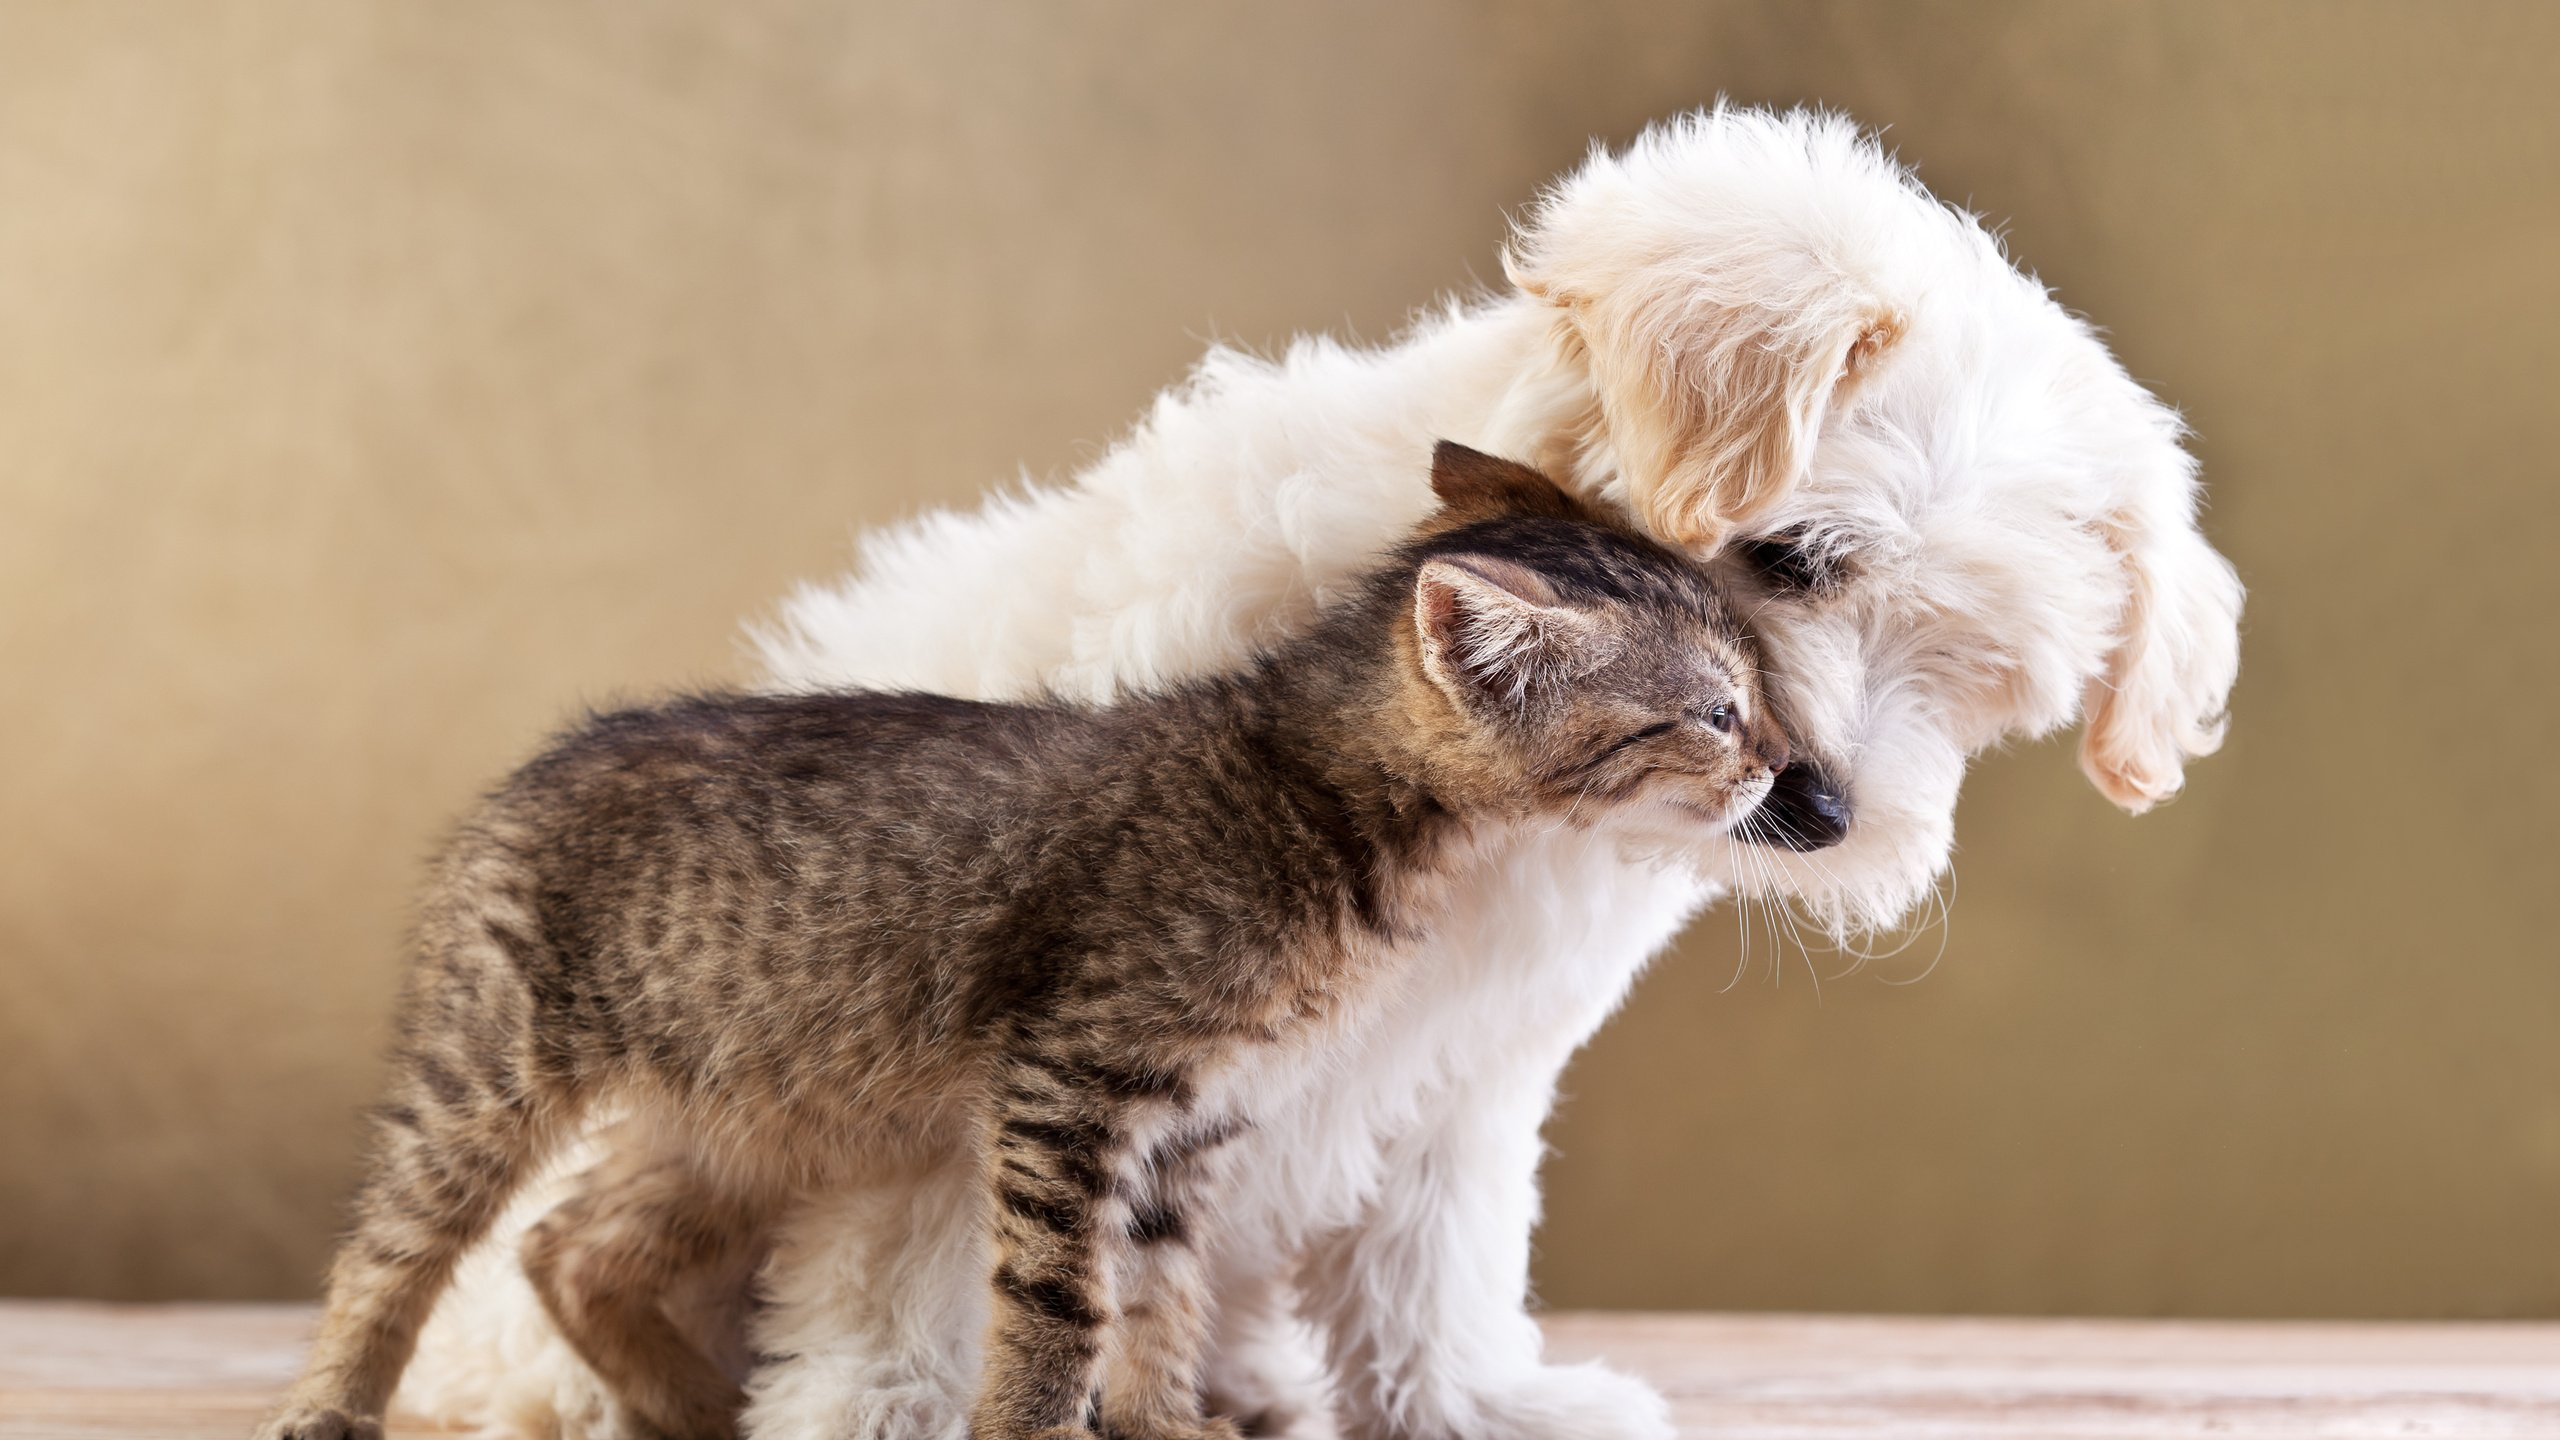 cat And Dog Love Wallpaper : Dog cat love pets animals wallpaper 2560x1440 438367 WallpaperUP